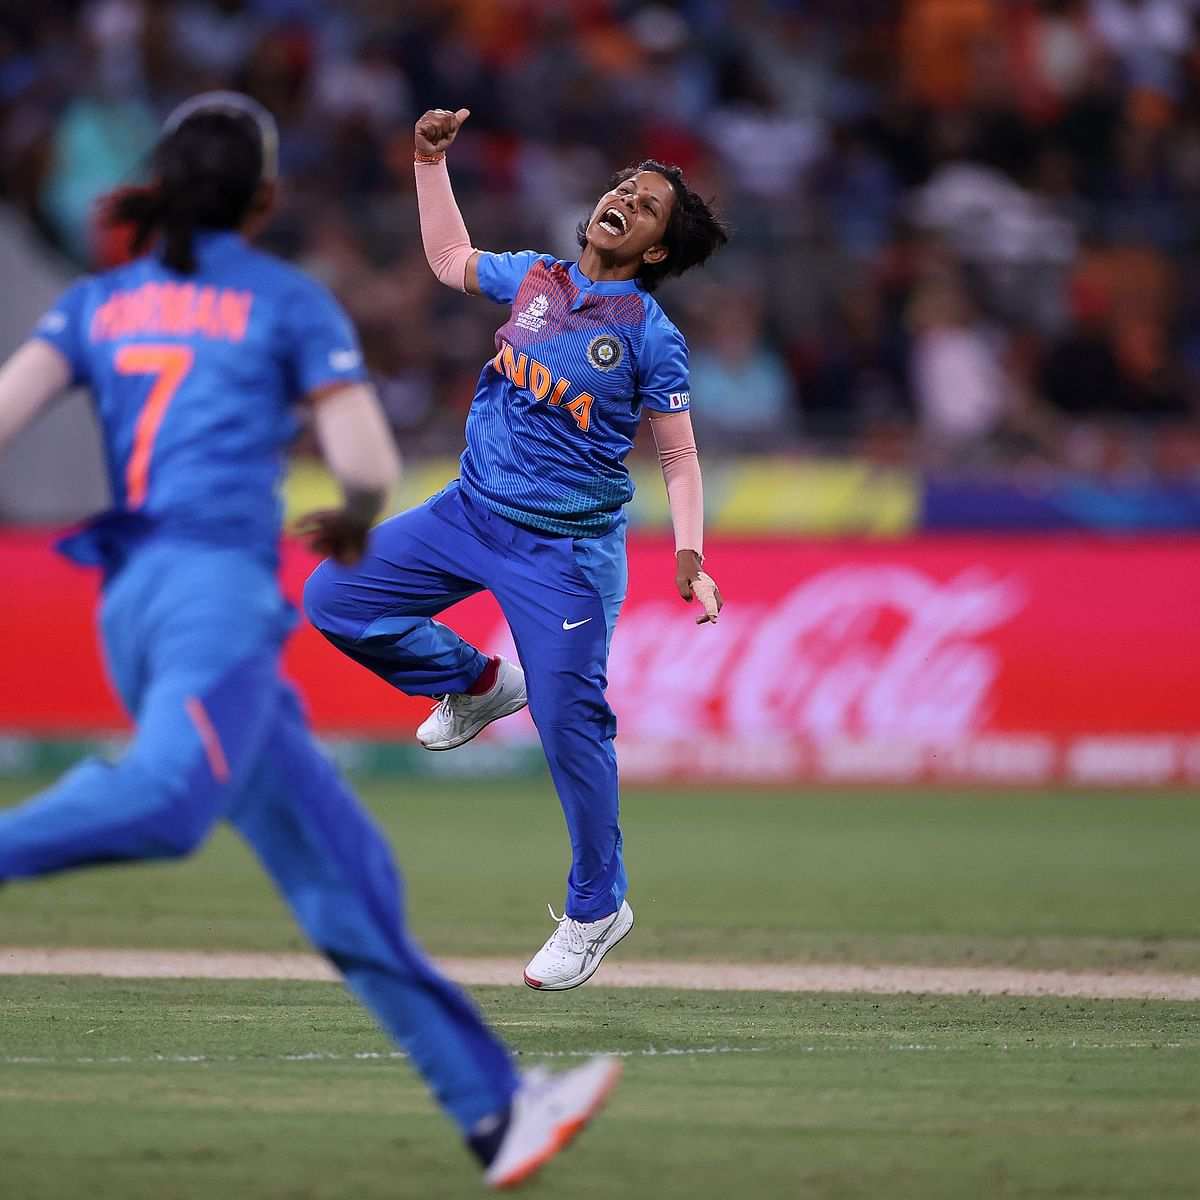 Poonam Yadav's fireworks help India in stunning win over Australia in T20 World Cup opener